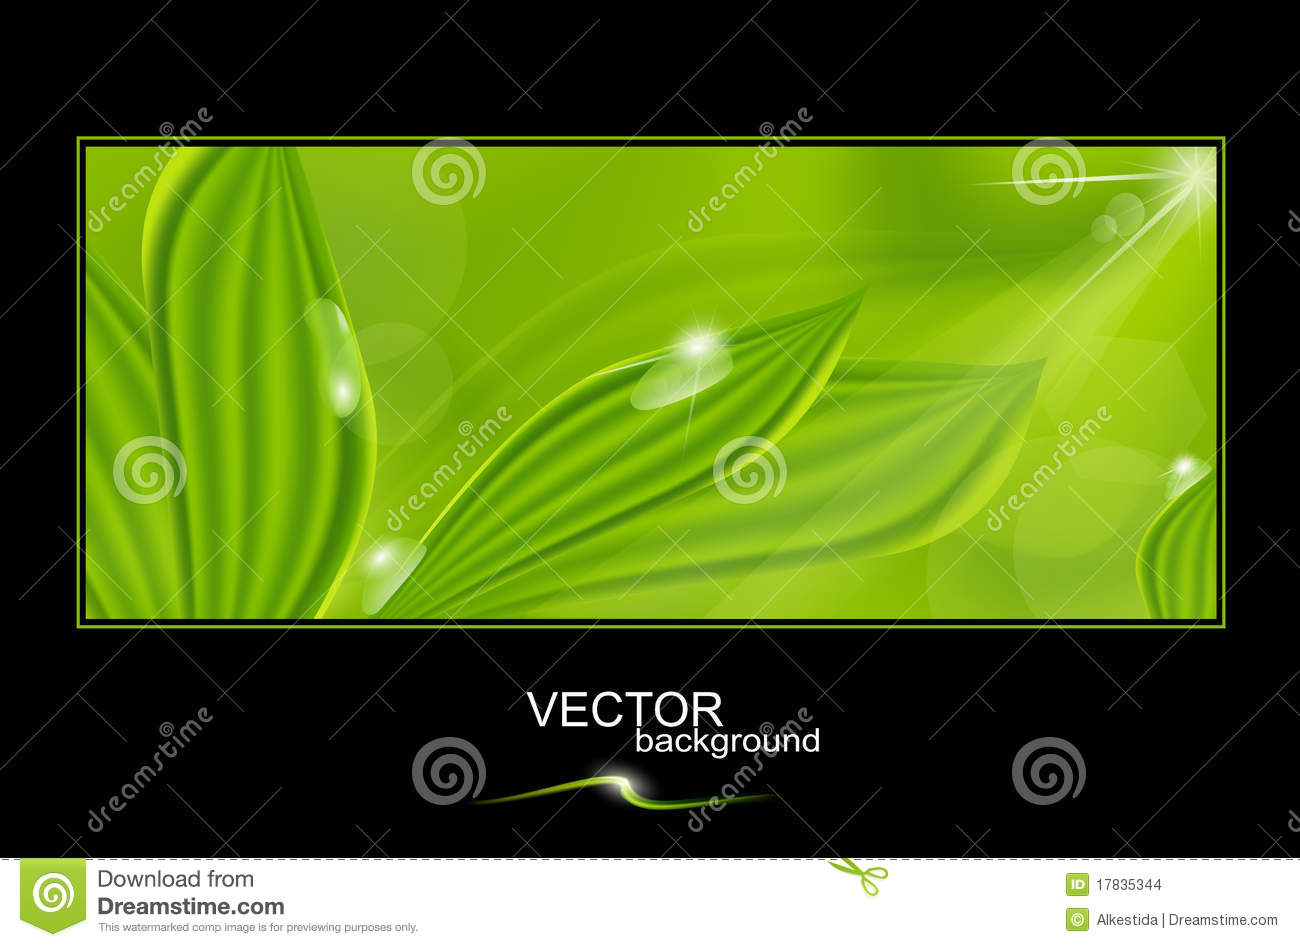 Vector green background with leaves and drops